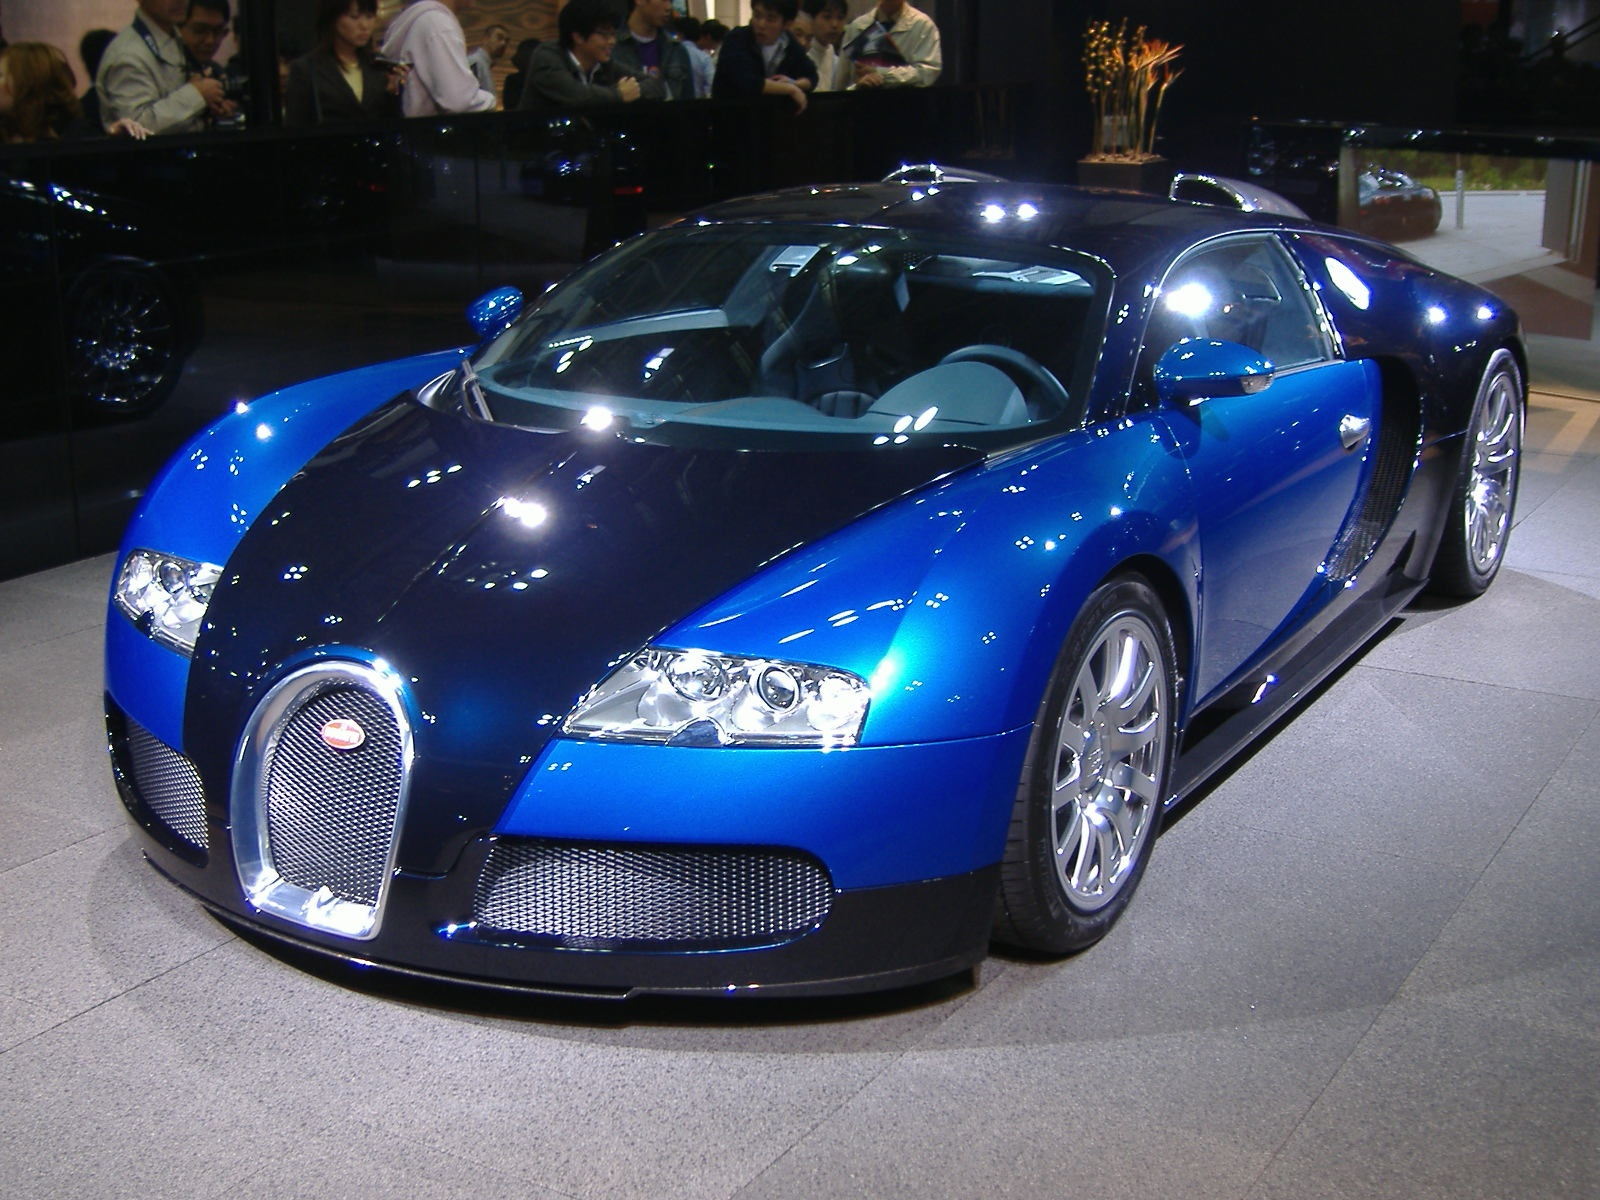 Bugatti Veyron 16.4 | - Your source for exotic car information ...